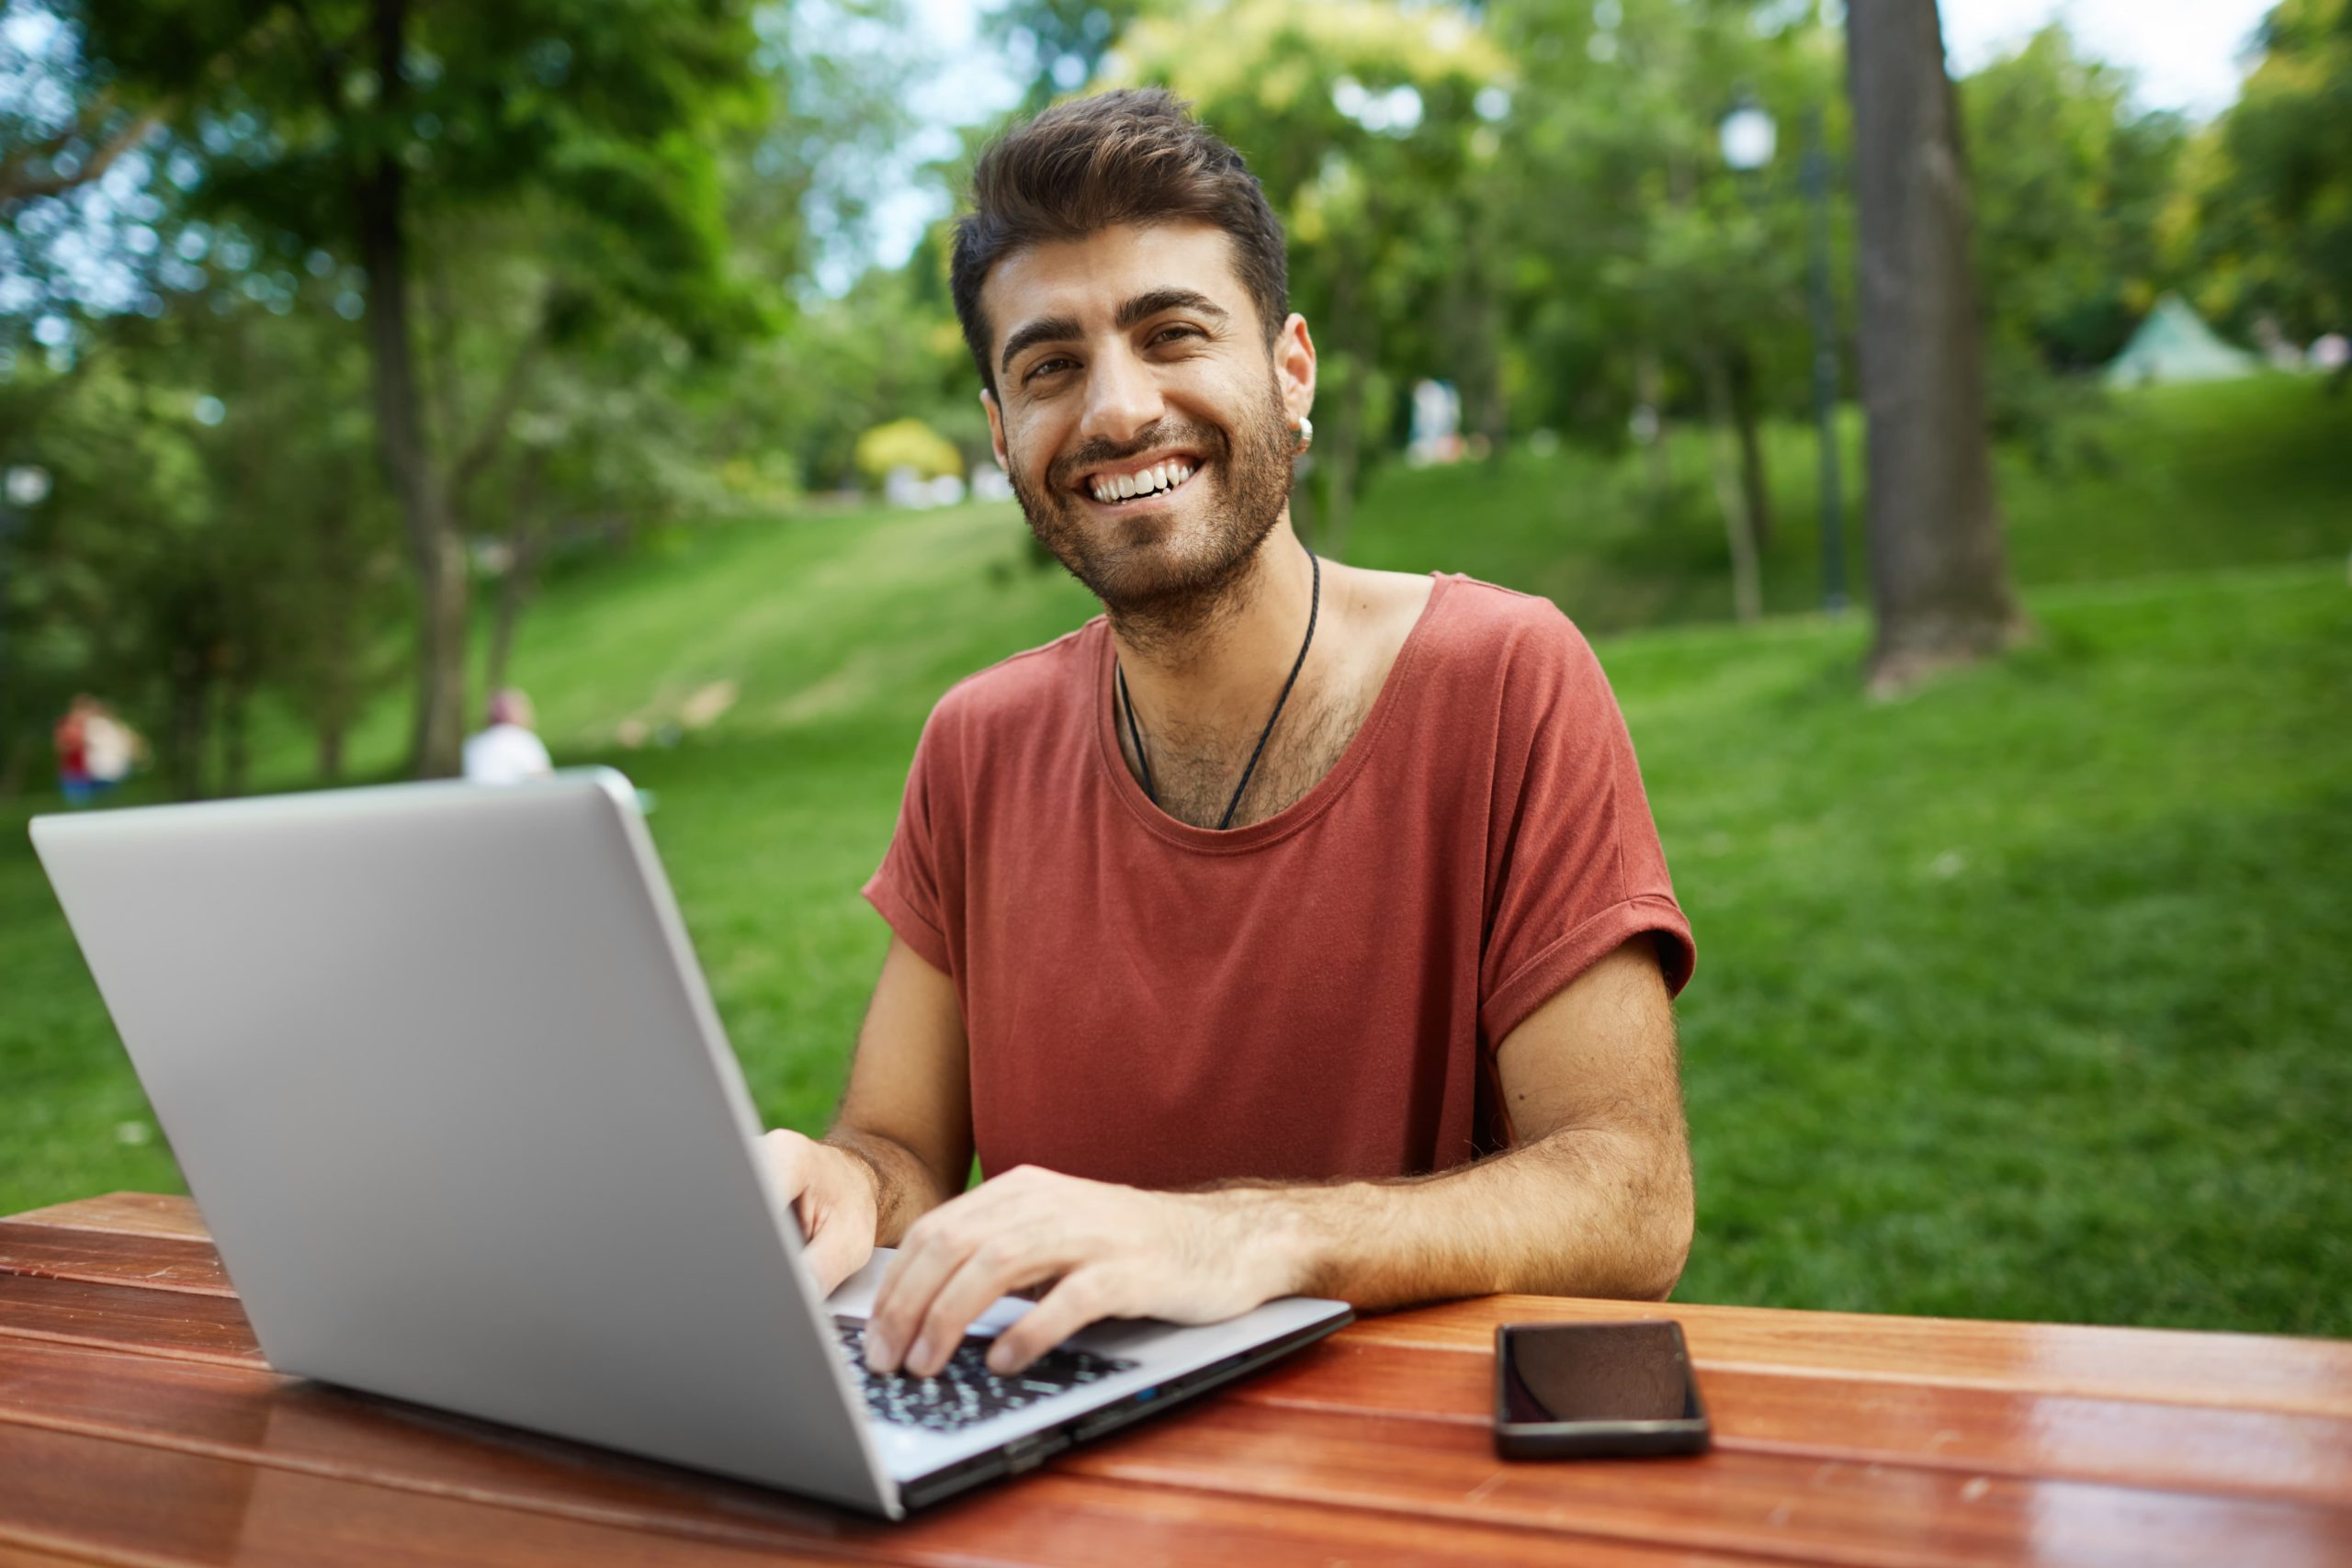 remote-worker-freelancer-working-remote-sit-park-bench-with-laptop-connect-wifi